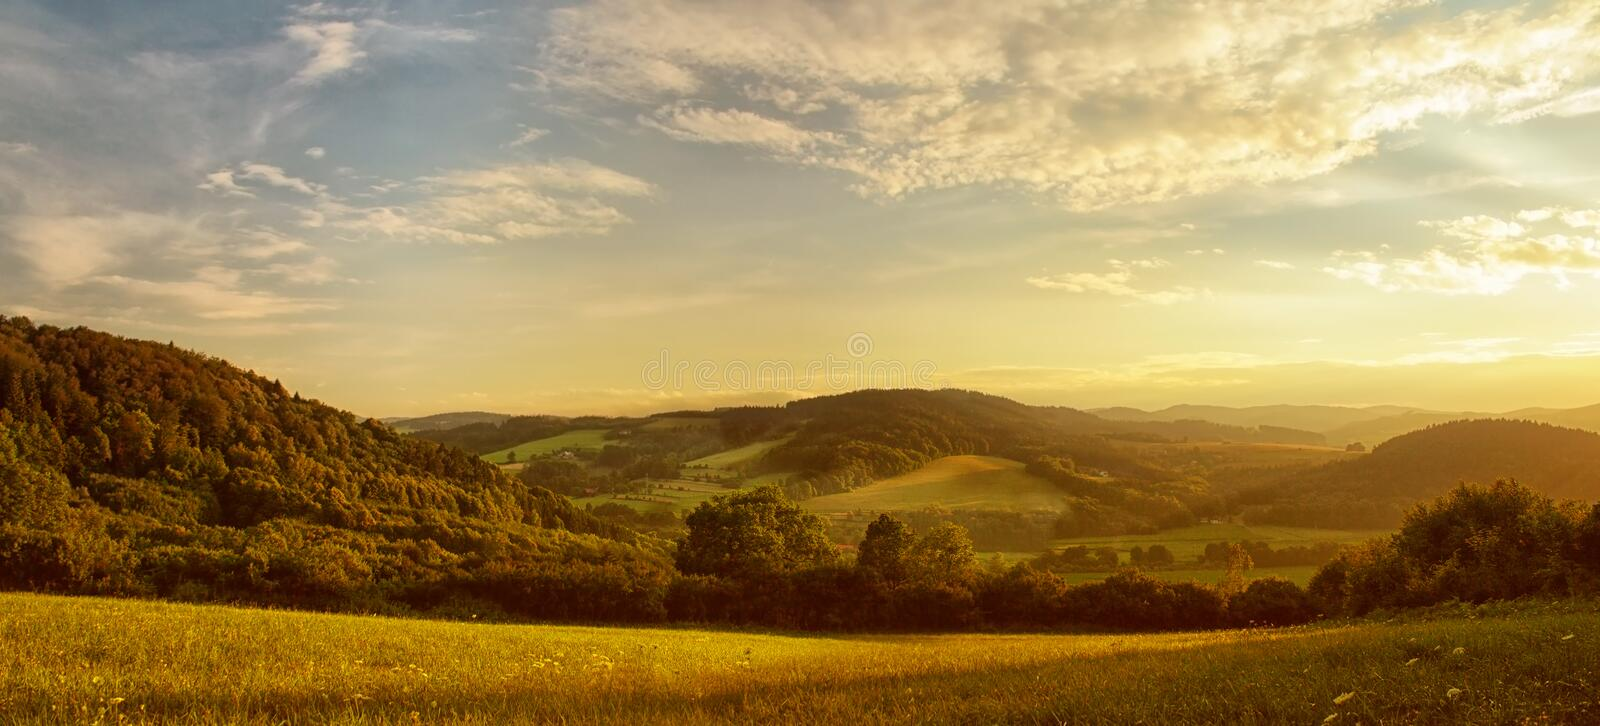 Sunset over hilly landscape, the golden glow of the setting sun, meadow in the foreground - scenic panorama royalty free stock image